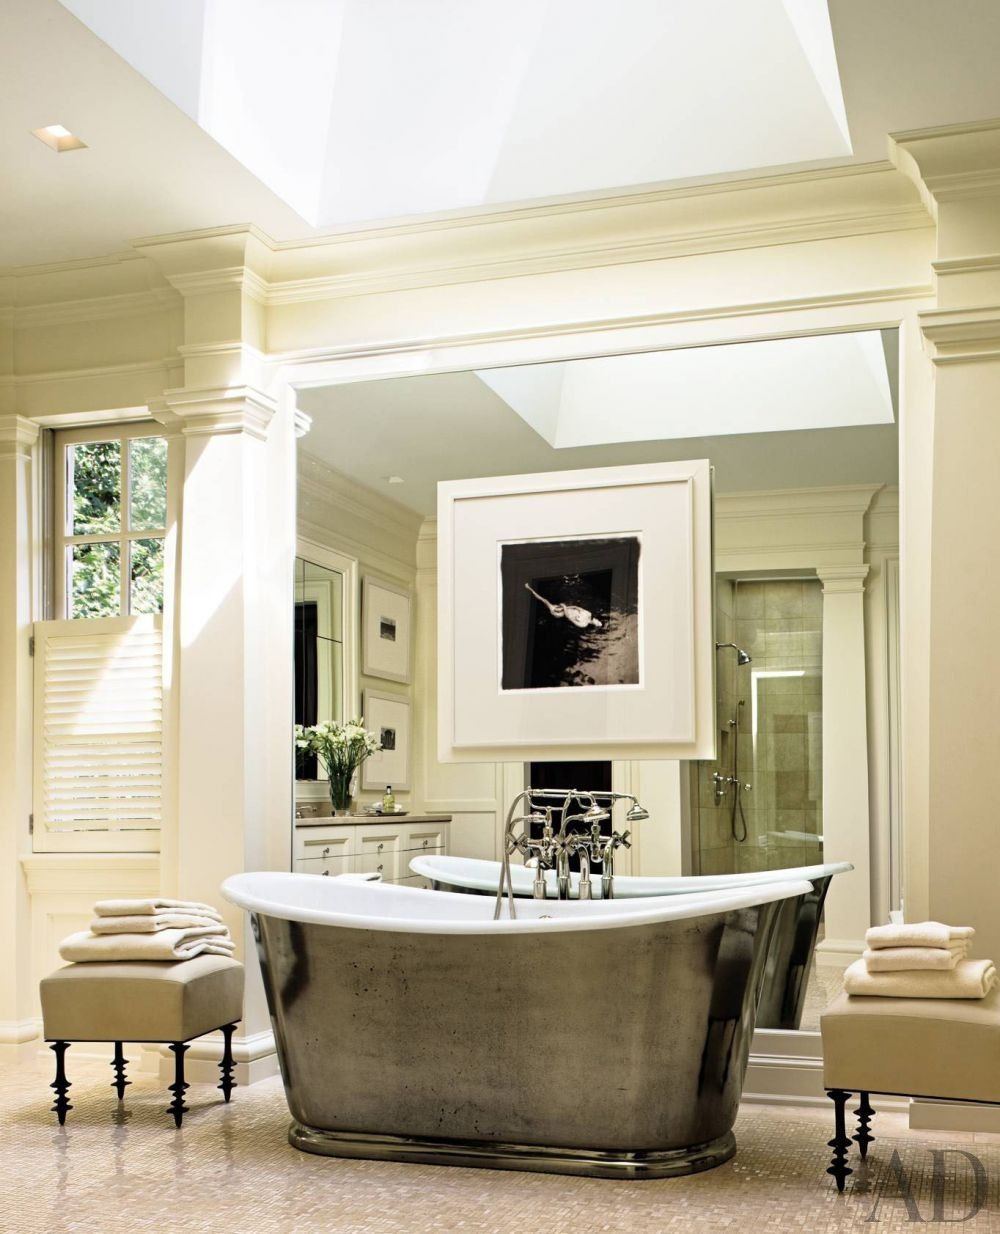 Thomas Pheasant installed a long, narrow bathtub for soaking in the ...